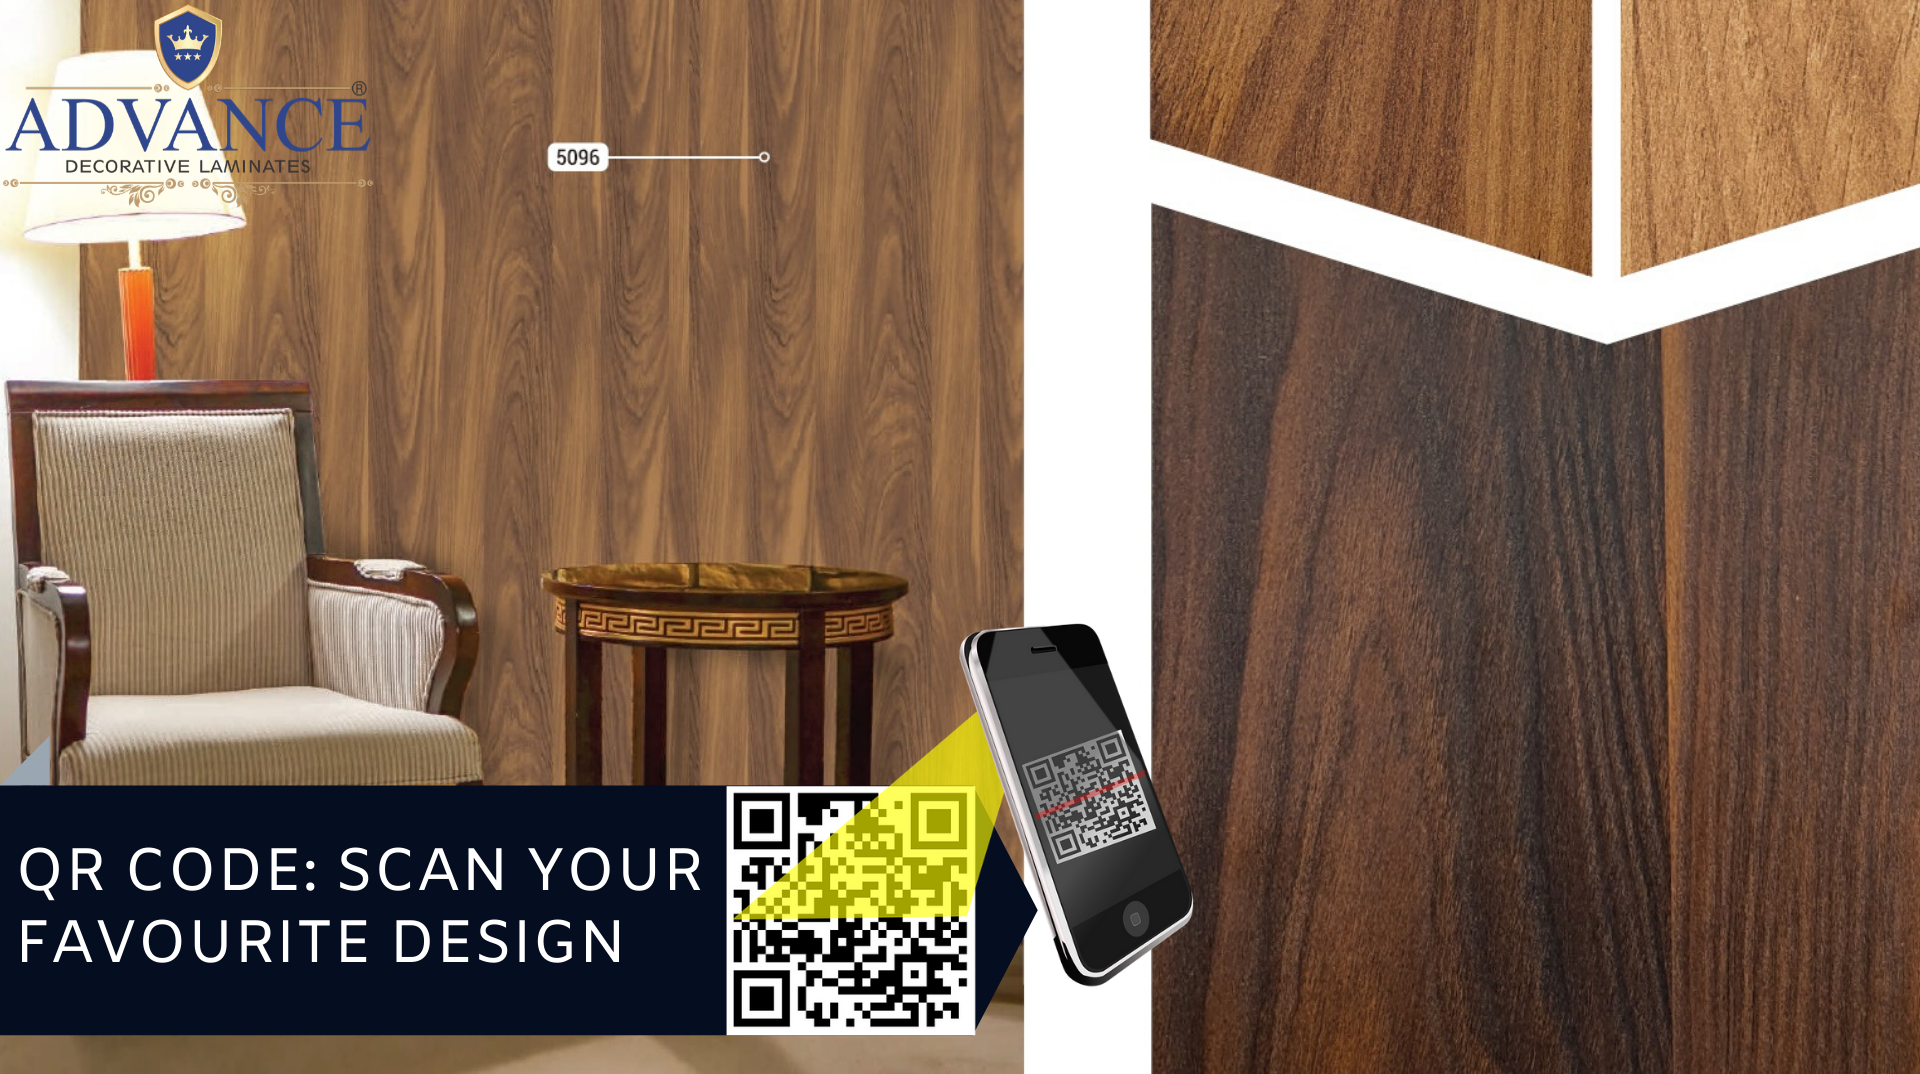 Scan the QR Code and select your design